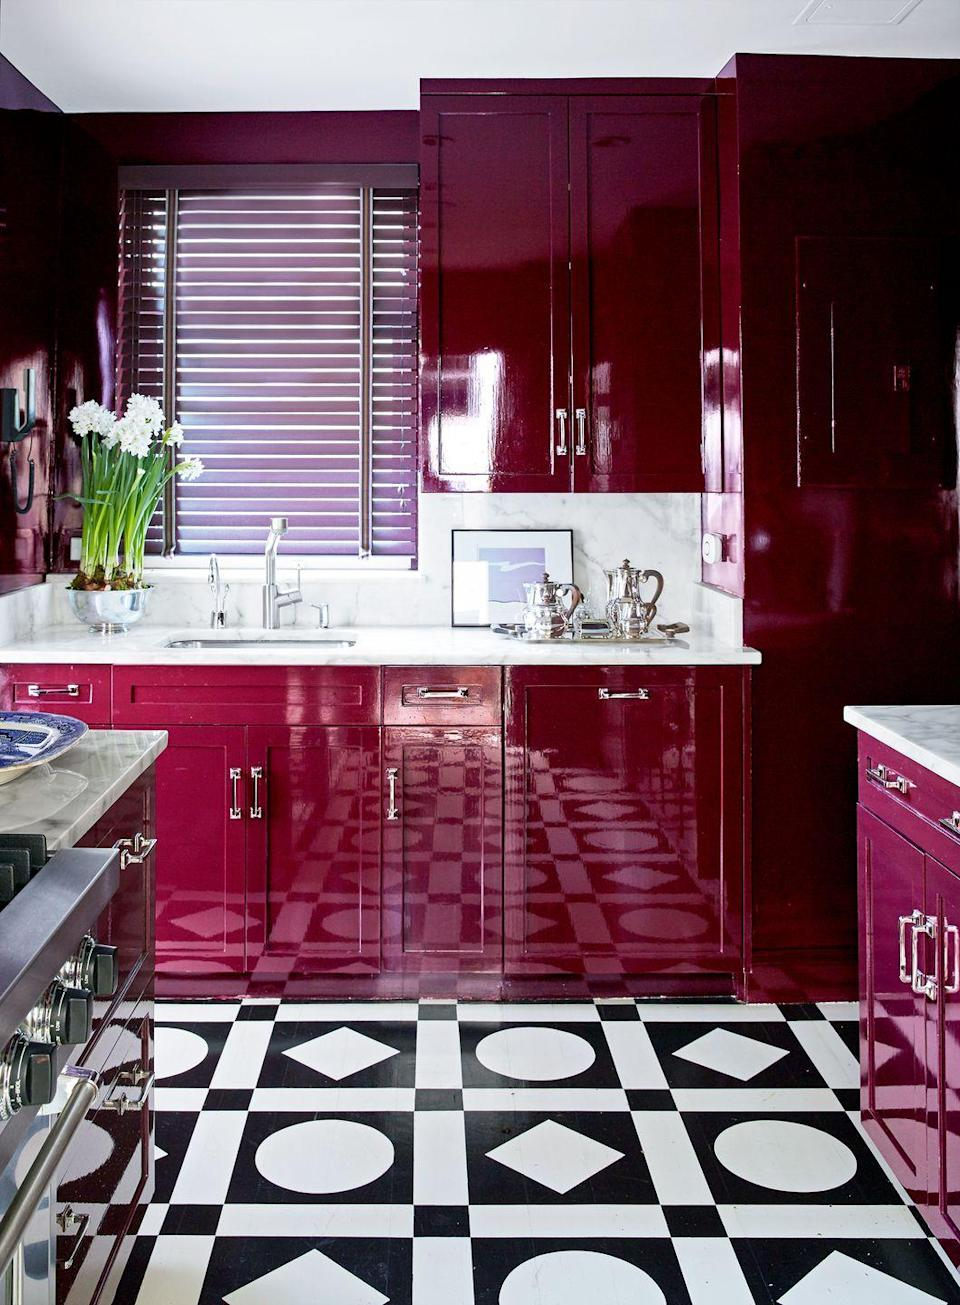 <p>Go glam with a high-gloss deep red reminiscent of wine. The robust, full color adds so much depth and glamour. Proof? This kitchen by Nick Olsen, where geometric tiles pump things up to the next level.</p>